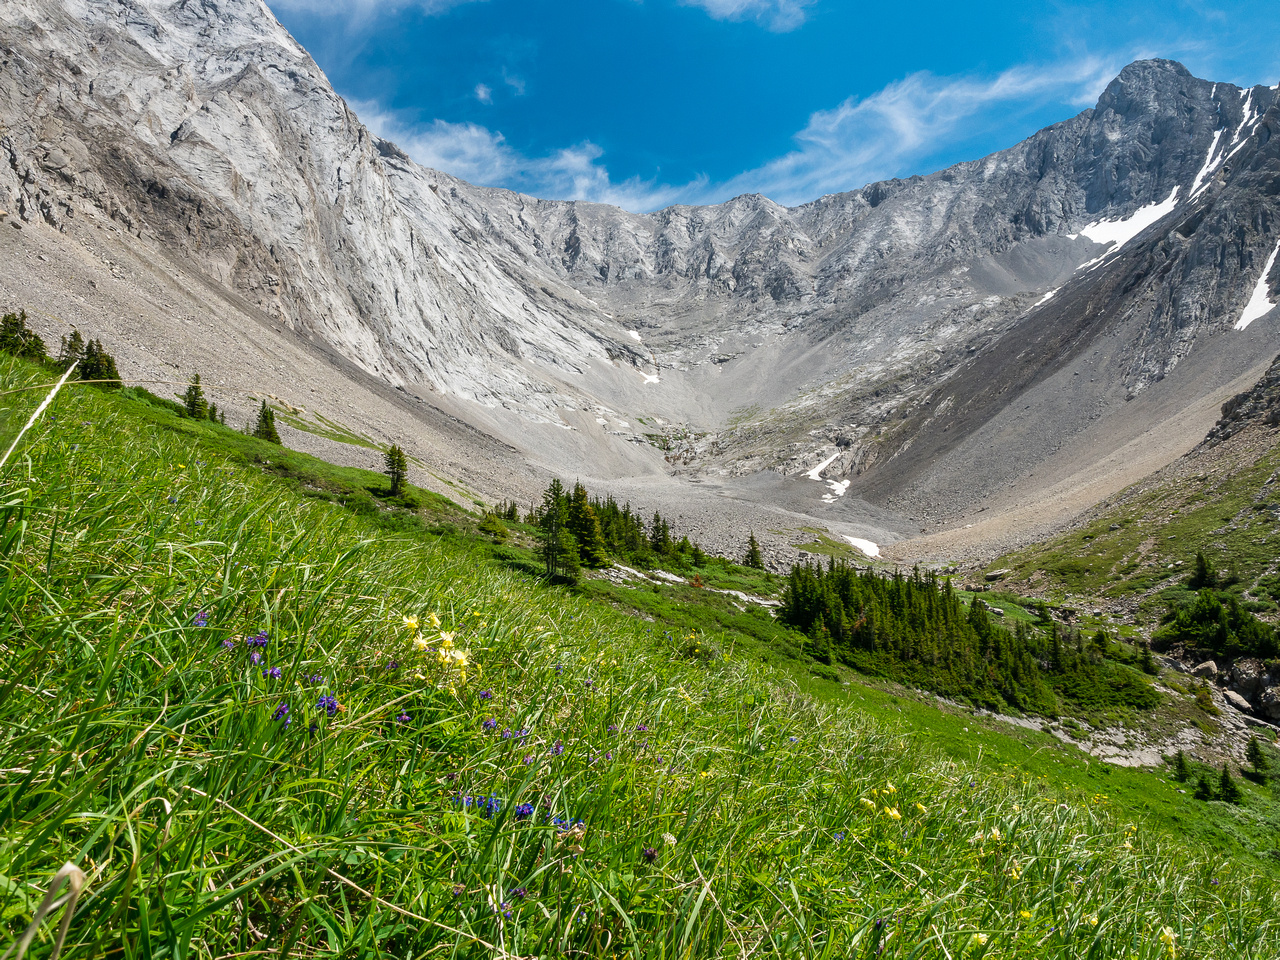 Taking a nice break in the meadows, looking back at the cirque and the two headwalls.